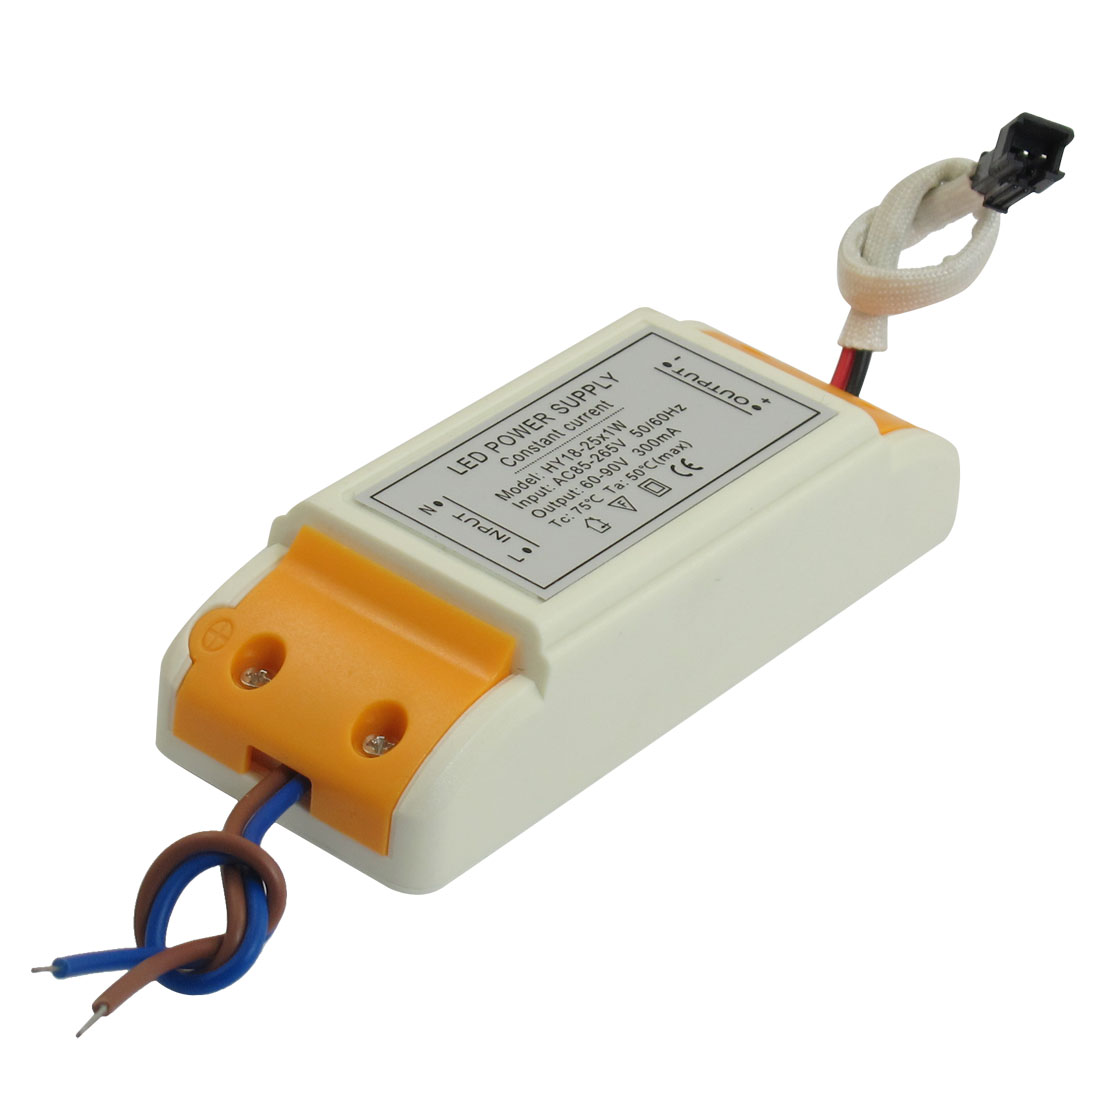 AC 110-265V DC 60-90V (18-25)x1W Halogen Lamp LED Power Supply Transformer